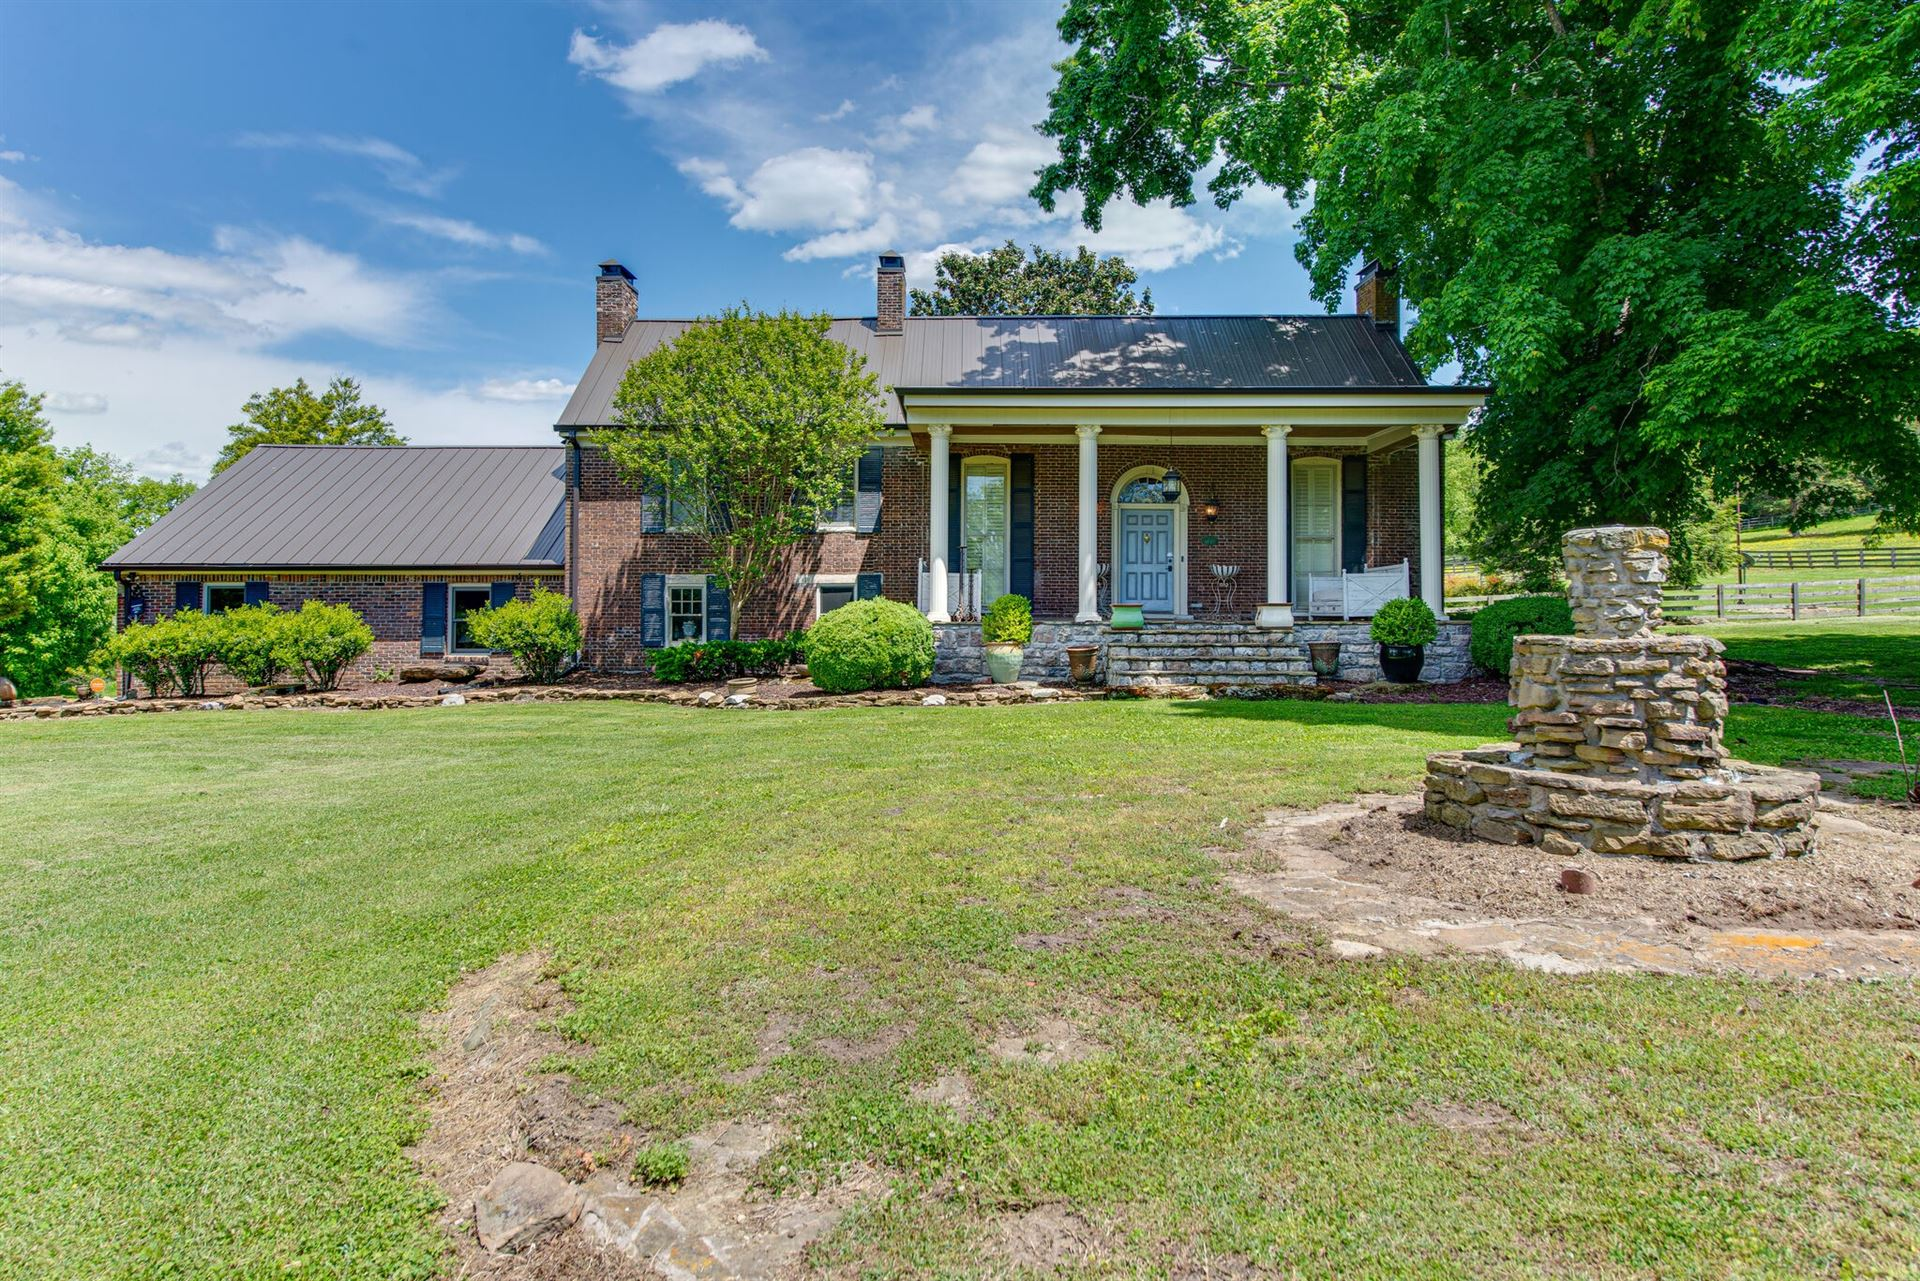 3052 Old Murfreesboro Rd, College Grove, TN 37046 - MLS#: 2215402